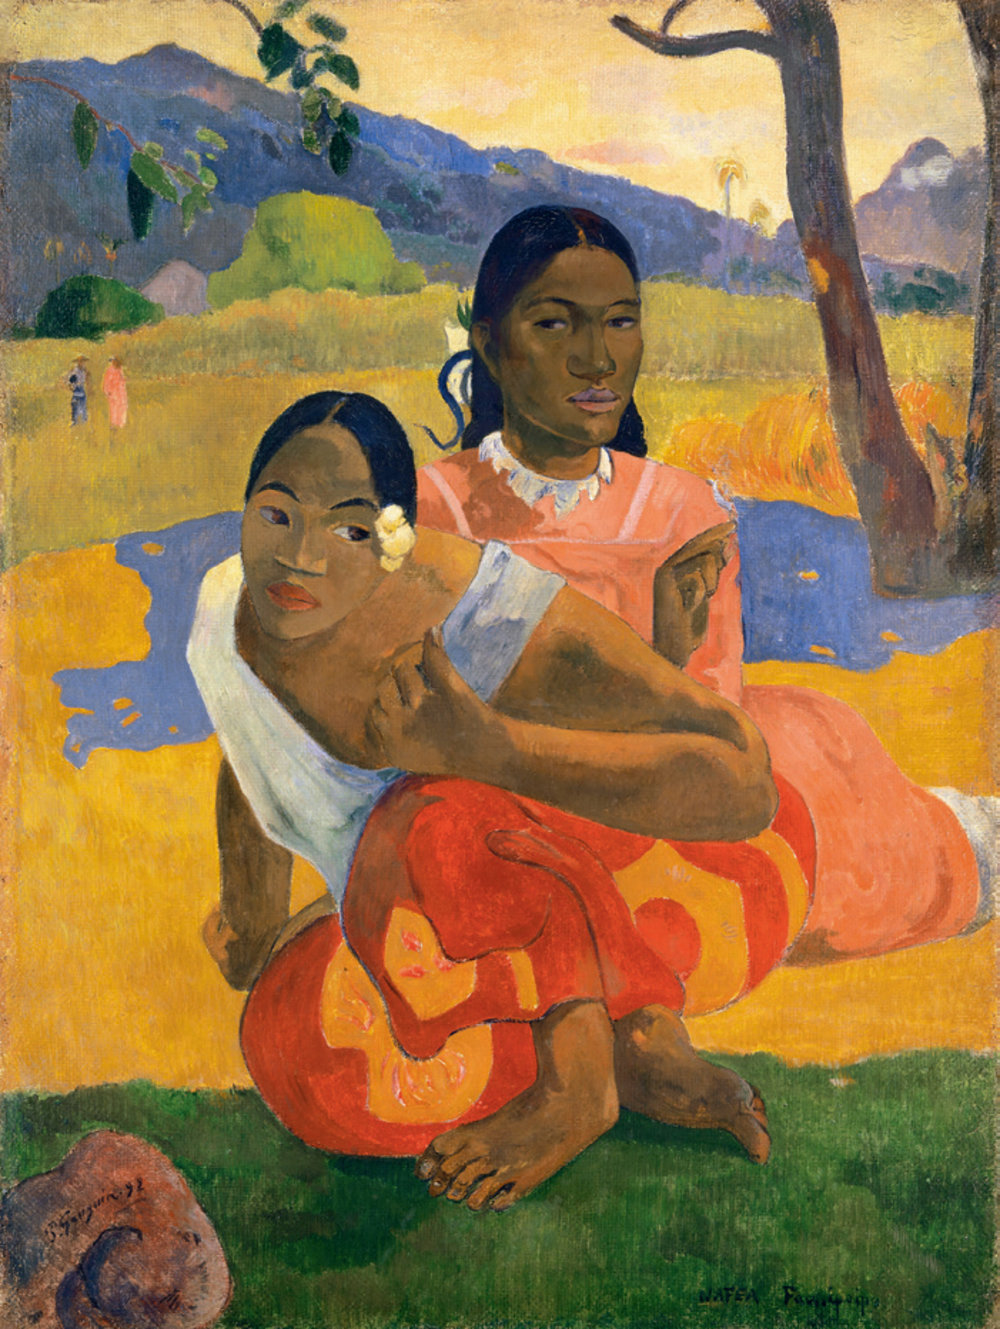 Paul Gauguin's Nafea Faa Ipoipo (sold for $300m in private sale)